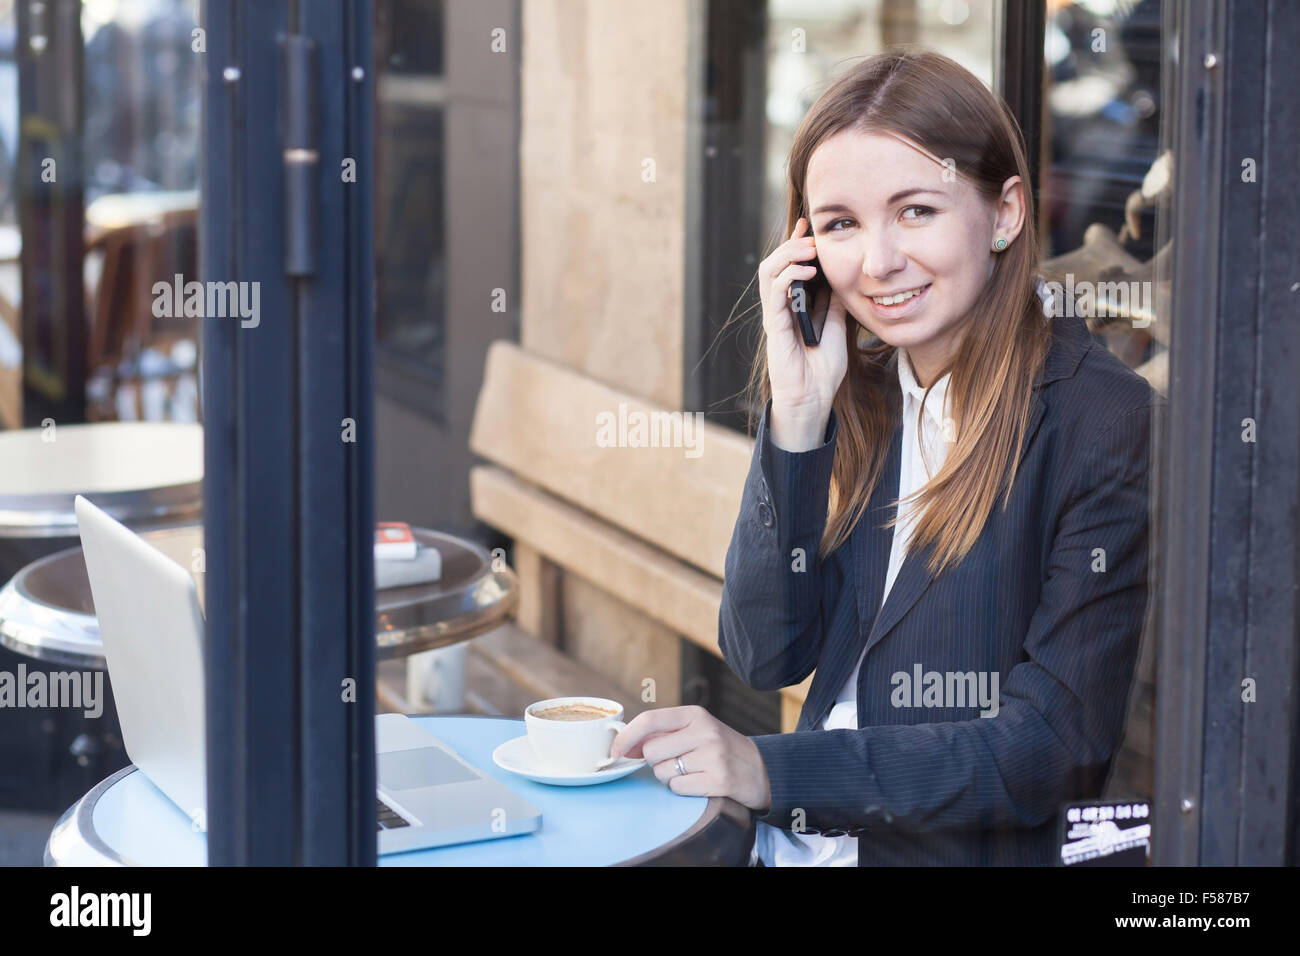 smiling business woman talking by phone in cafe - Stock Image